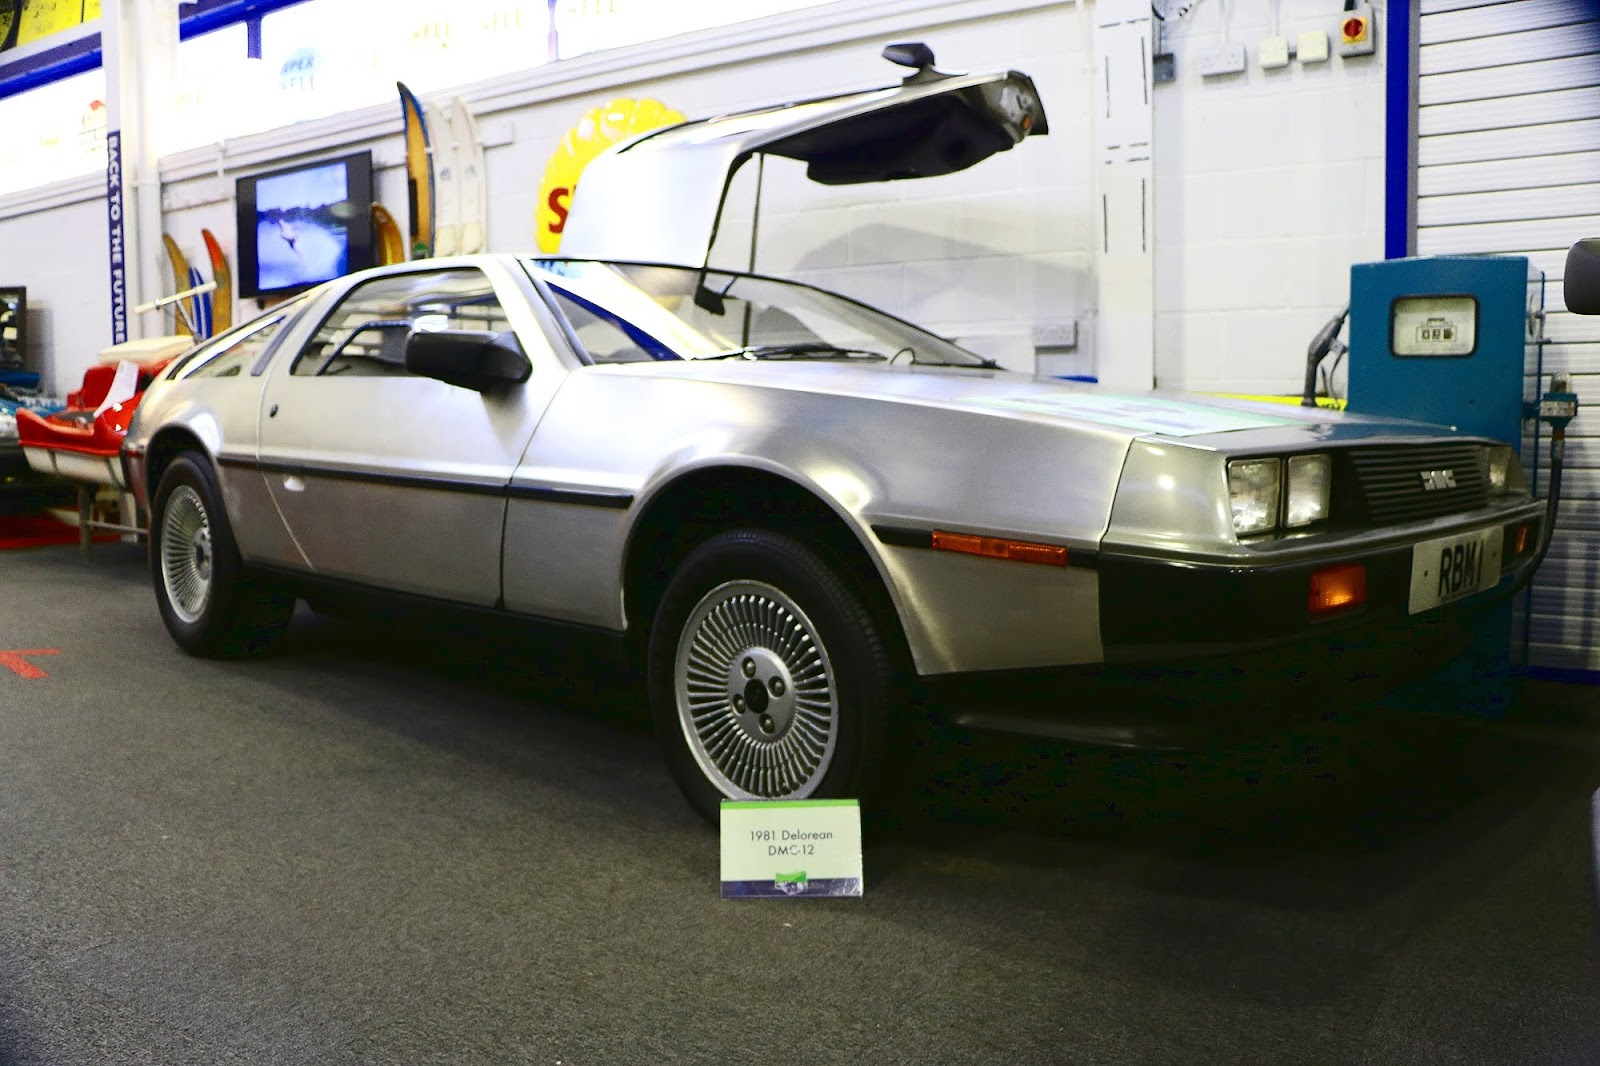 1981 Delorean DMC-12.jpg